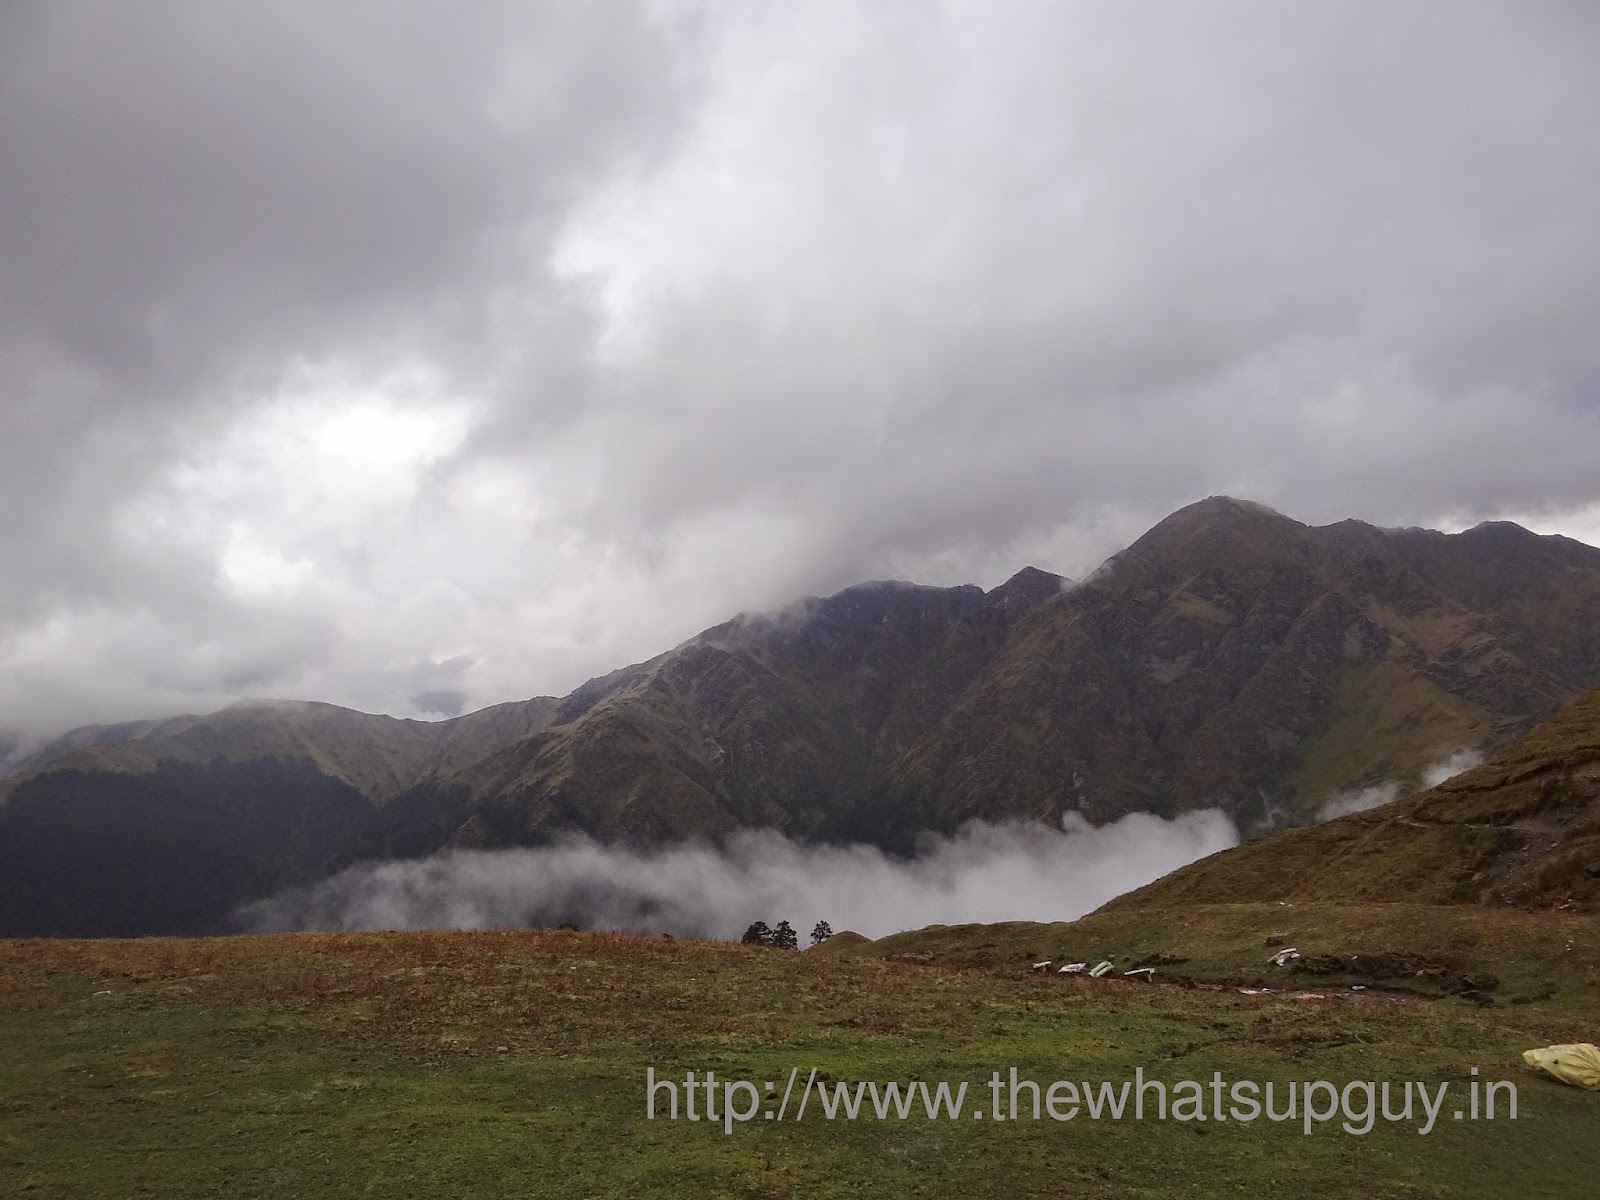 View-Bedni-Bugyal-Roopkund-Trek-With-India-Hikes-Day-2